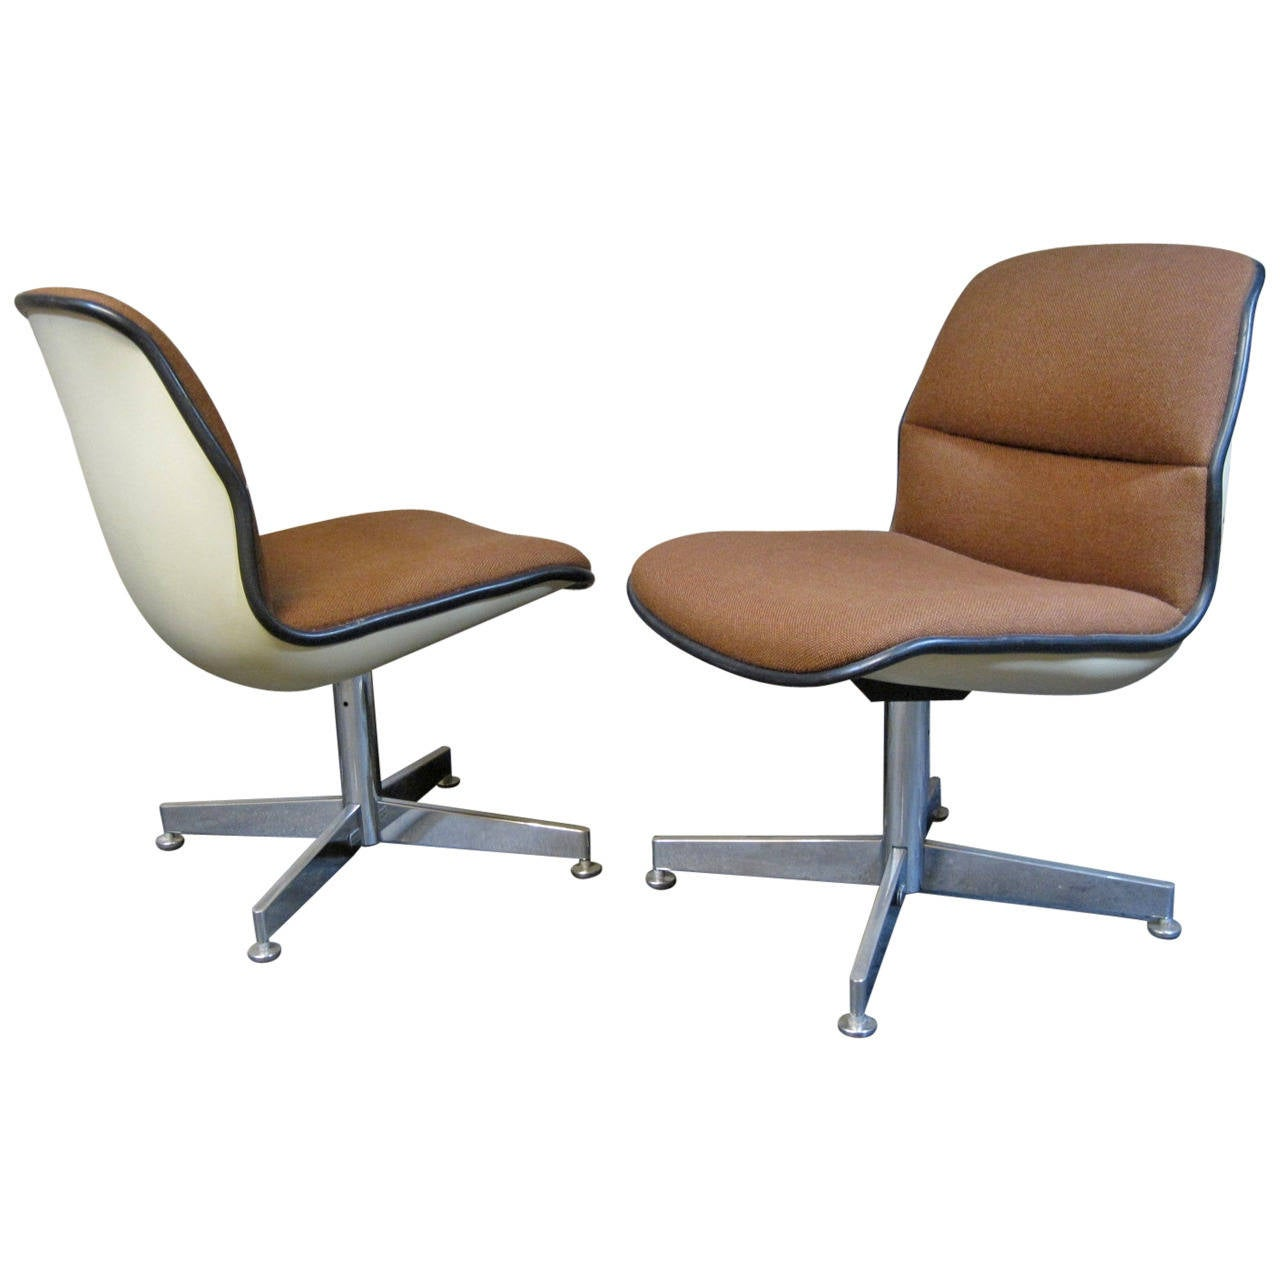 Charles pollock style chairs mid century modern at 1stdibs for Mid century modern style chairs